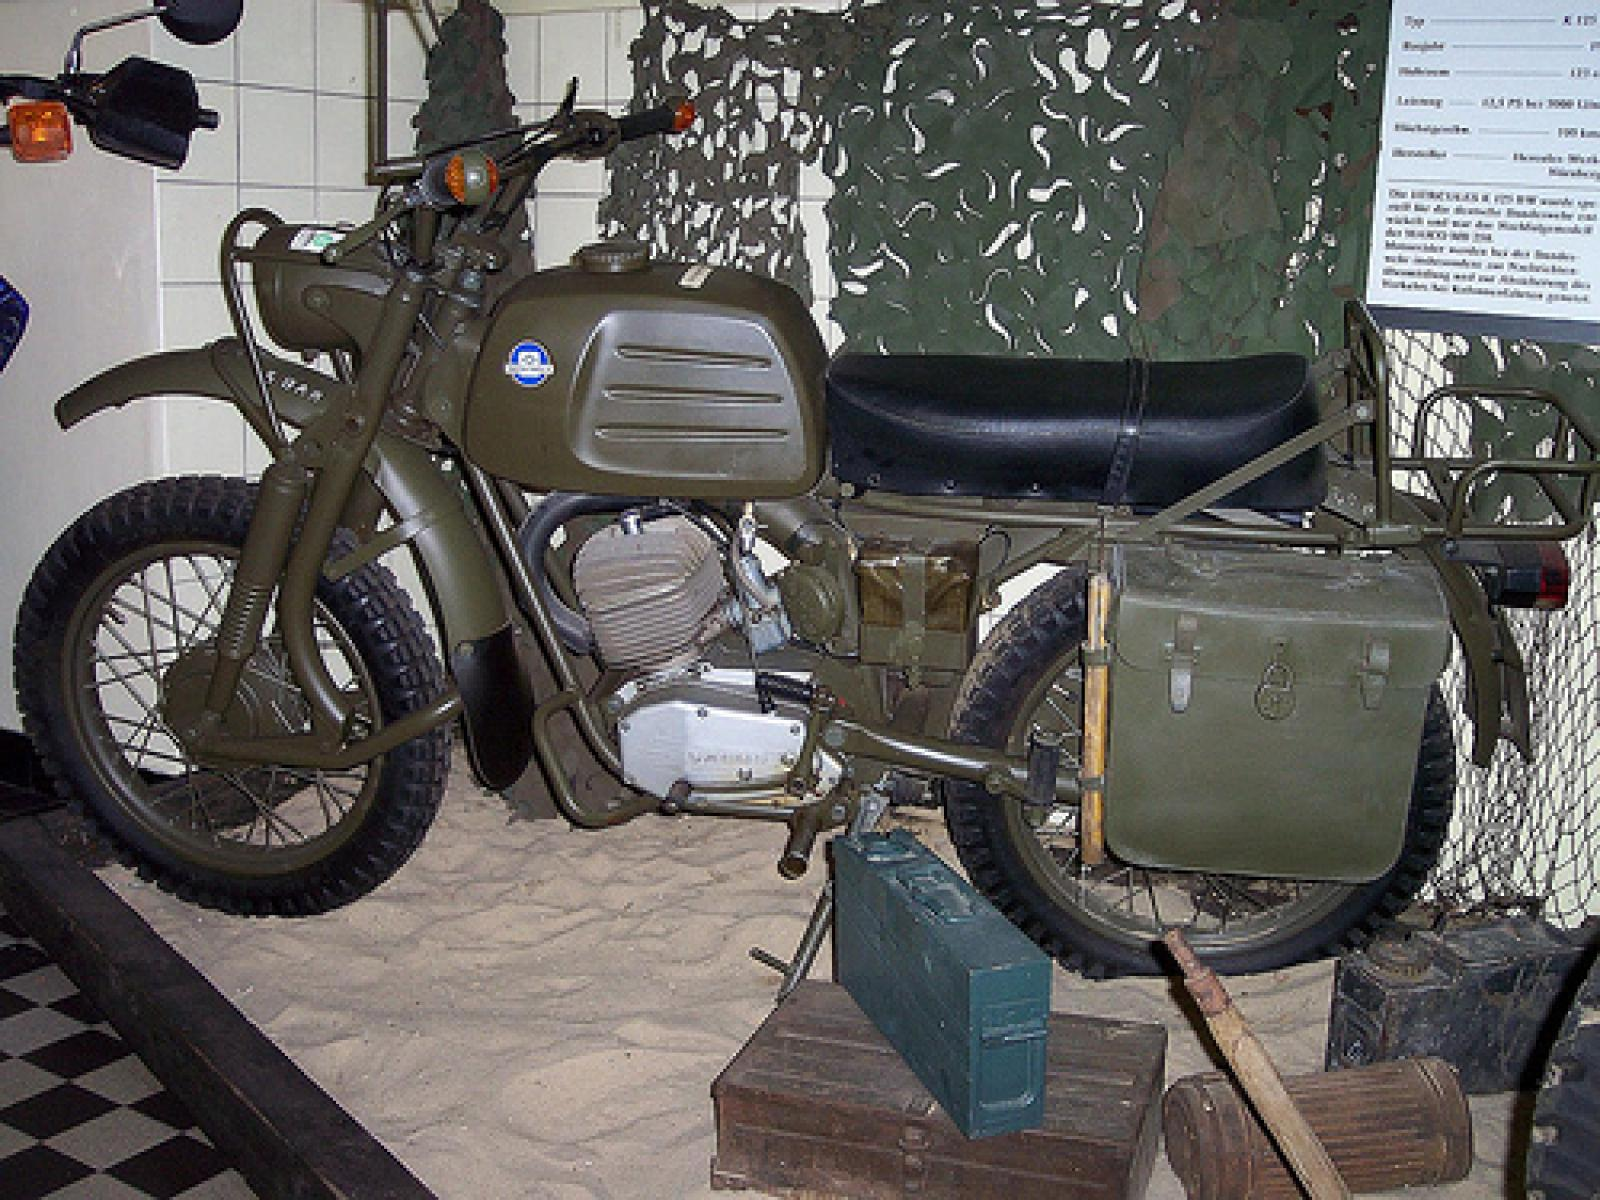 Hercules K 125 Military 1975 images #74415